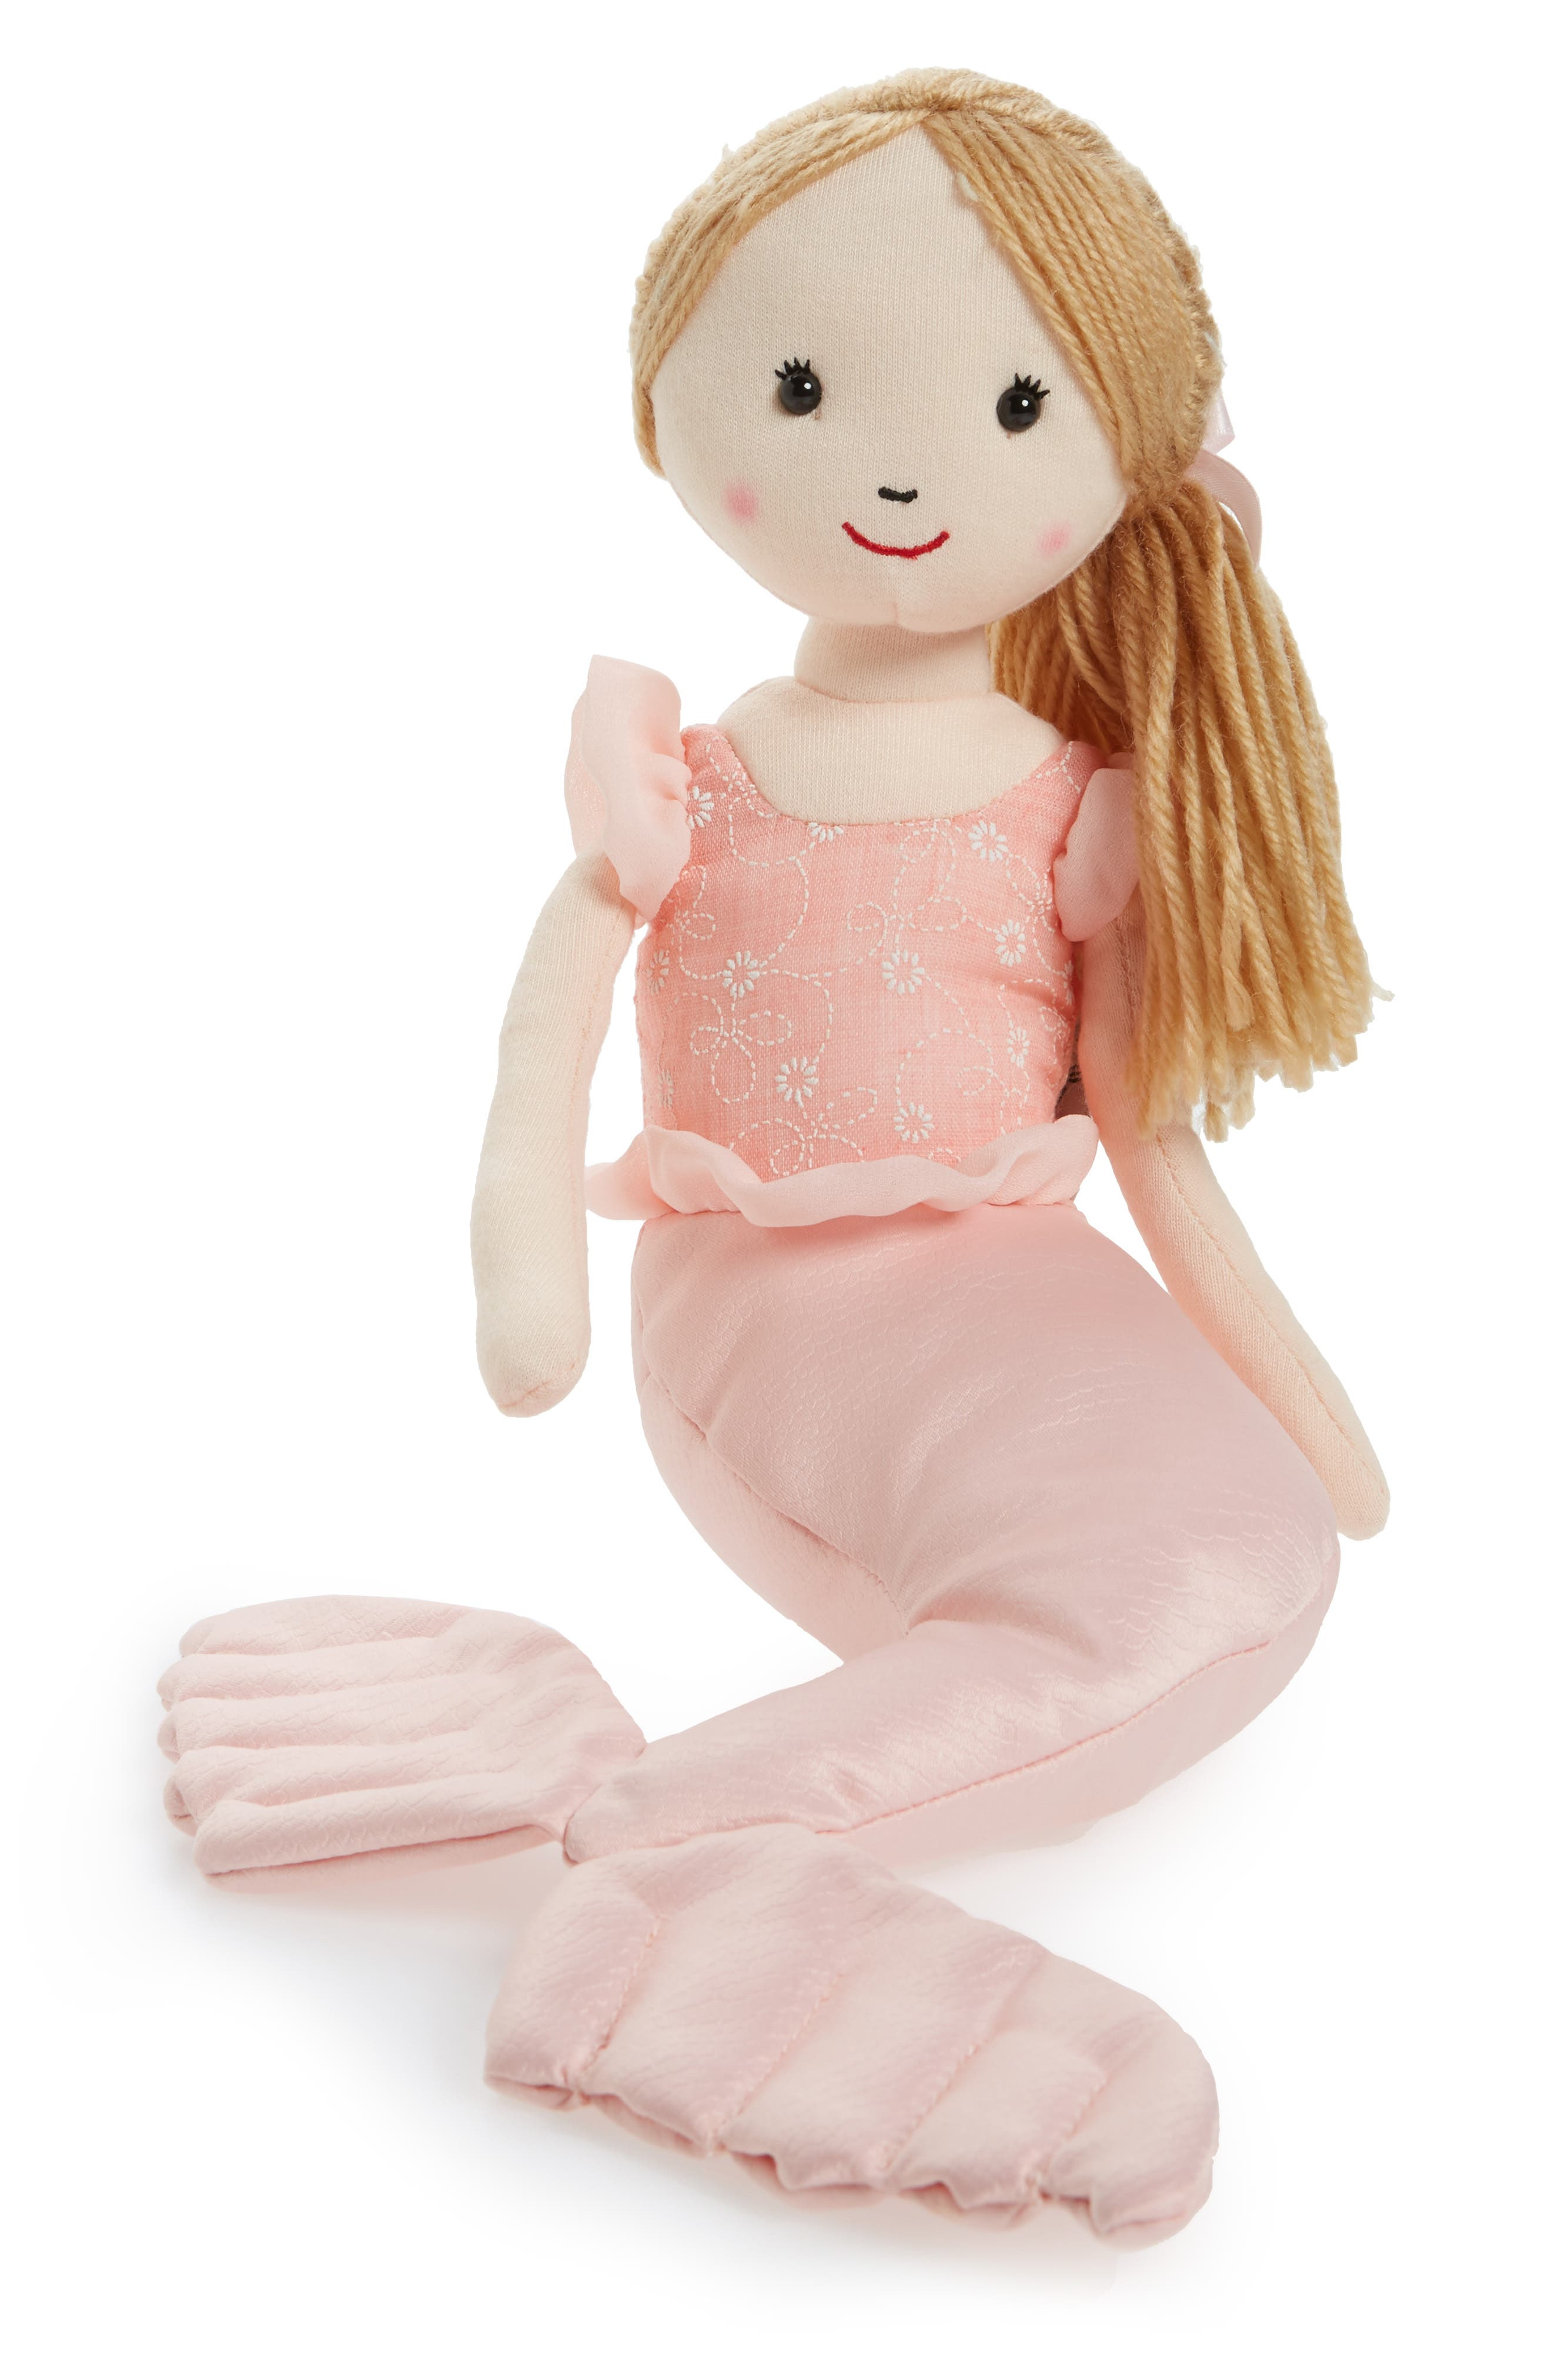 Shellbelle - Mermaid Millie Stuffed Toy,                         Main,                         color, Pink